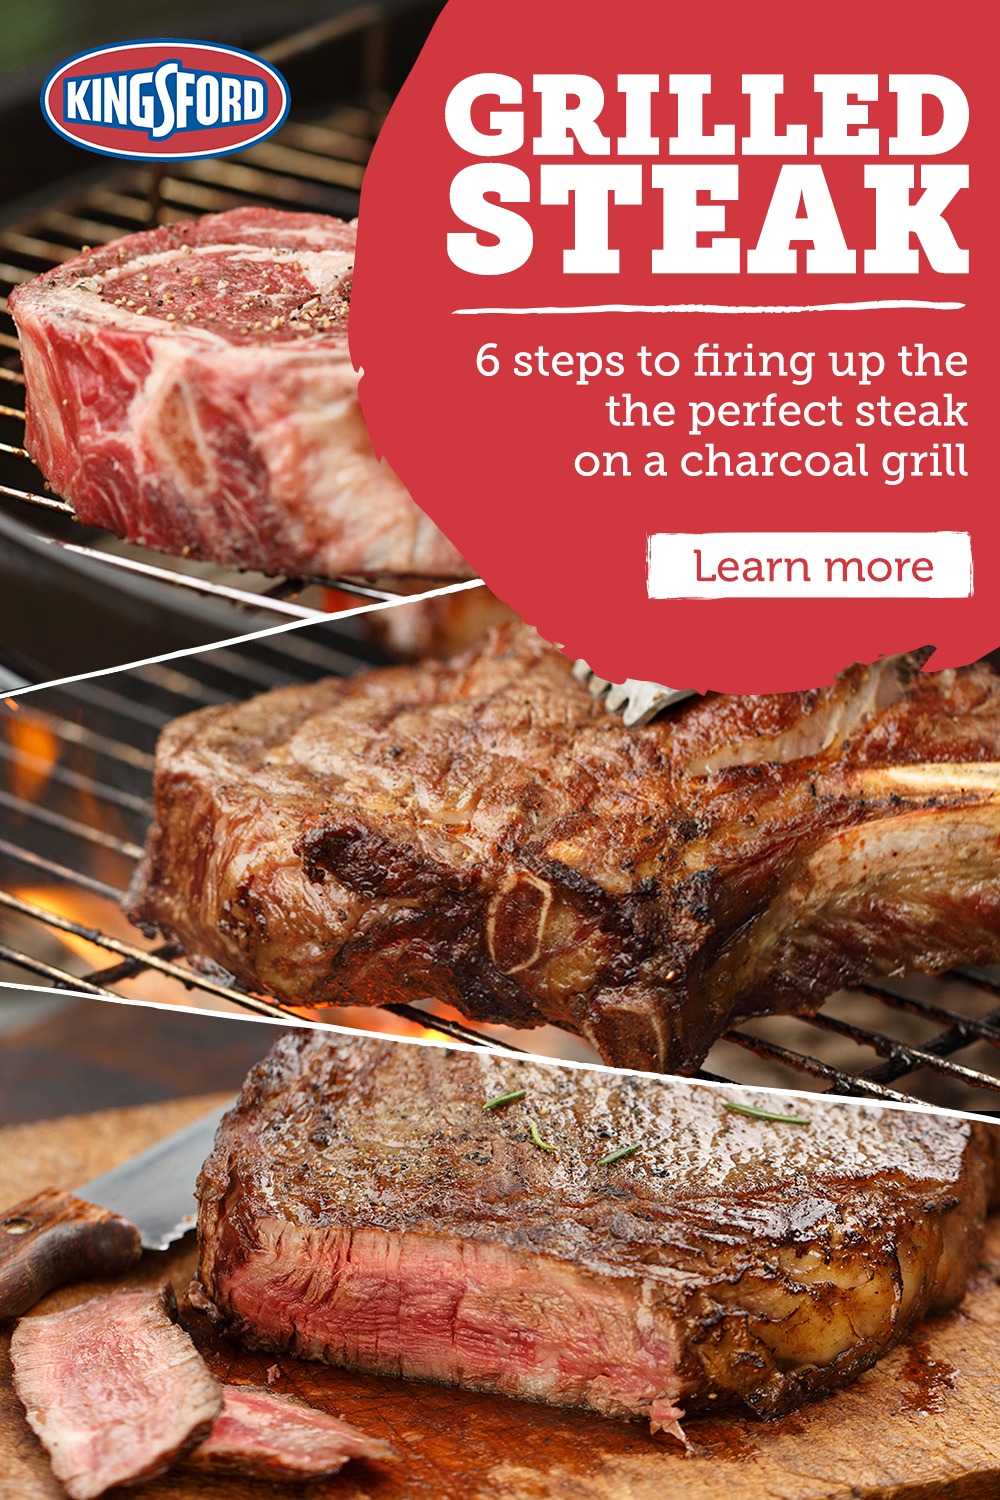 Easy Grilled Steak Recipe Recipe Smoked Food Recipes Grilled Steak Recipes Cooking The Perfect Steak